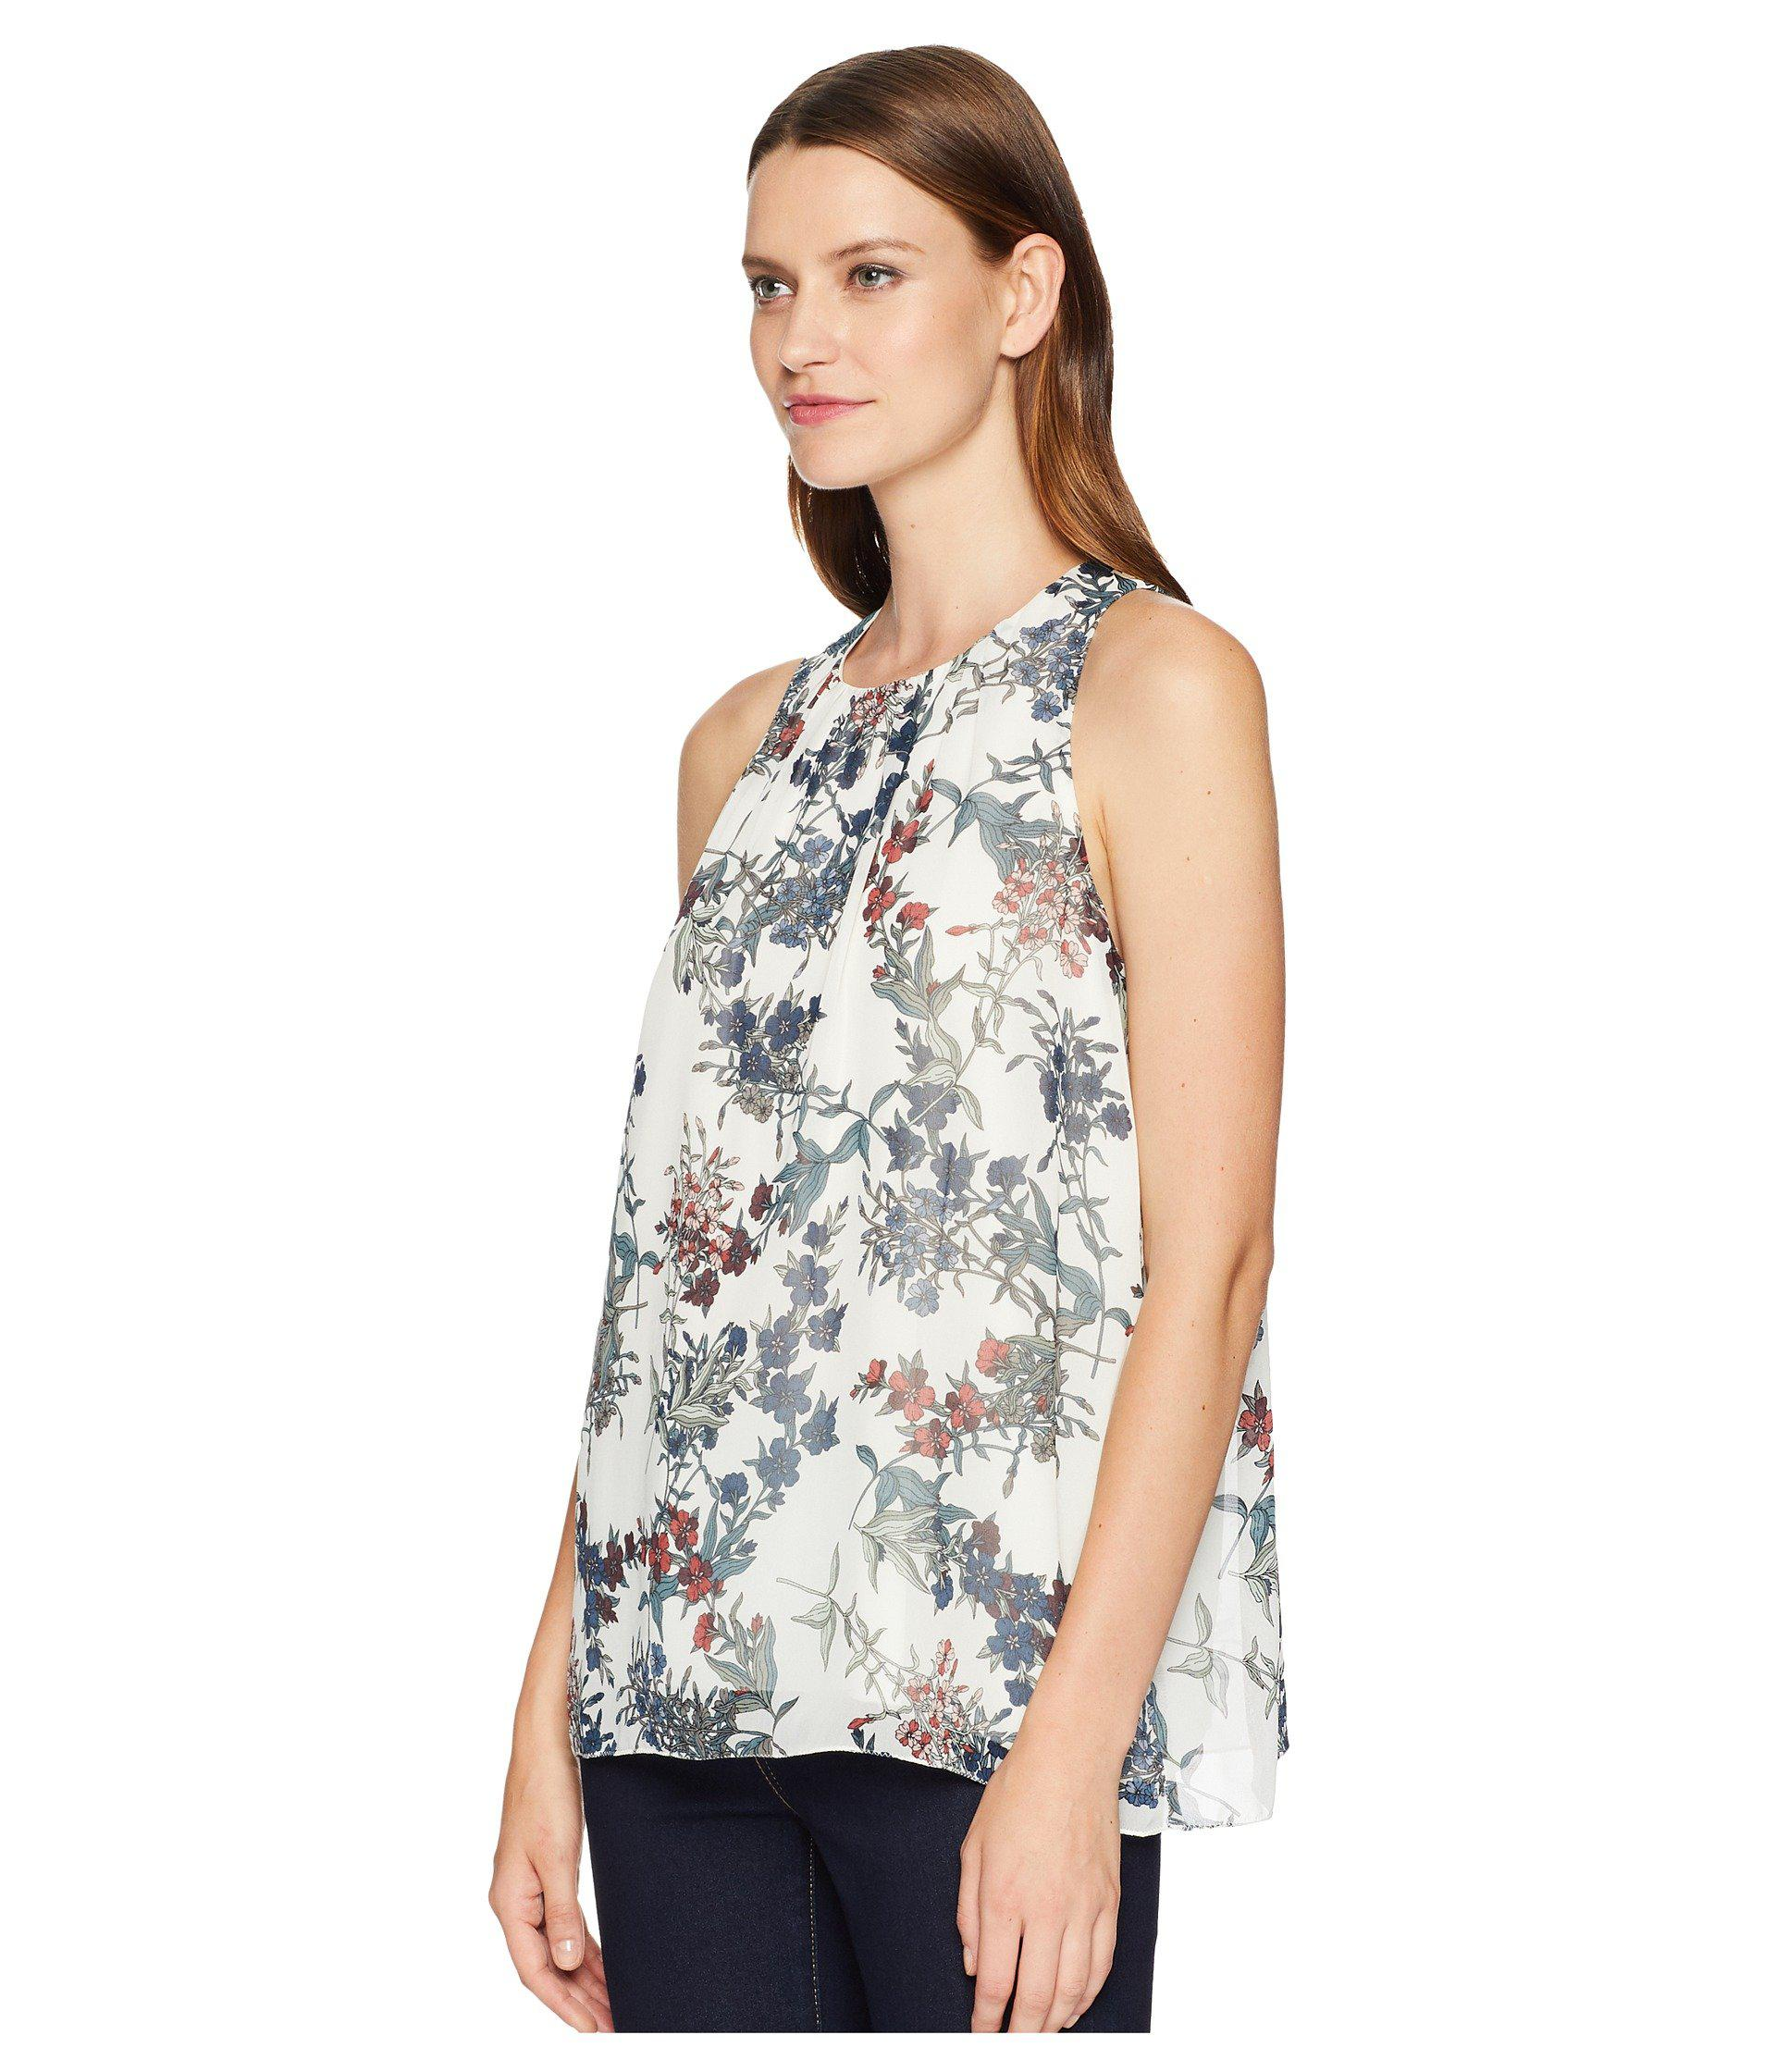 def38f068c57fc Lyst - Vince Camuto Sleeveless Garden Heirloom Floral Blouse in White -  Save 56%